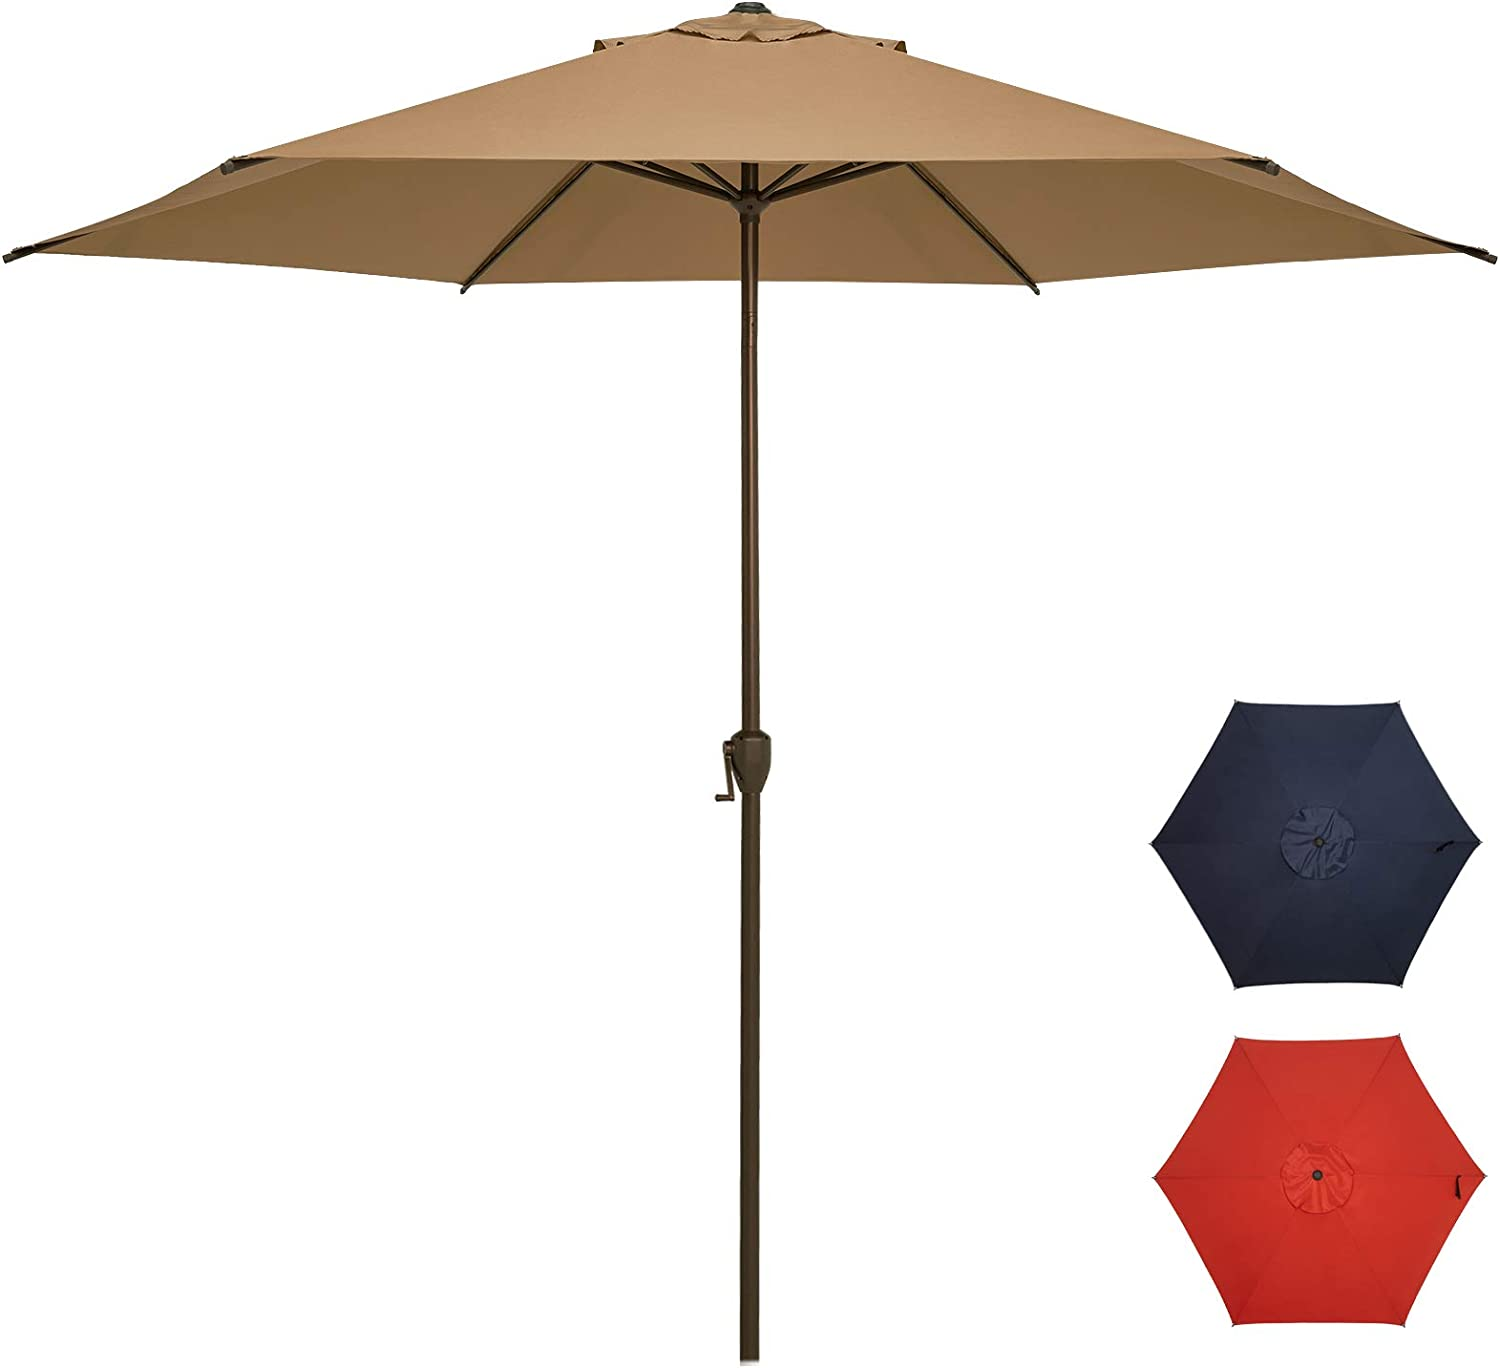 Ogrmar 11Ft Patio Umbrella Outdoor Free Shipping New Butt Table Reservation Push with